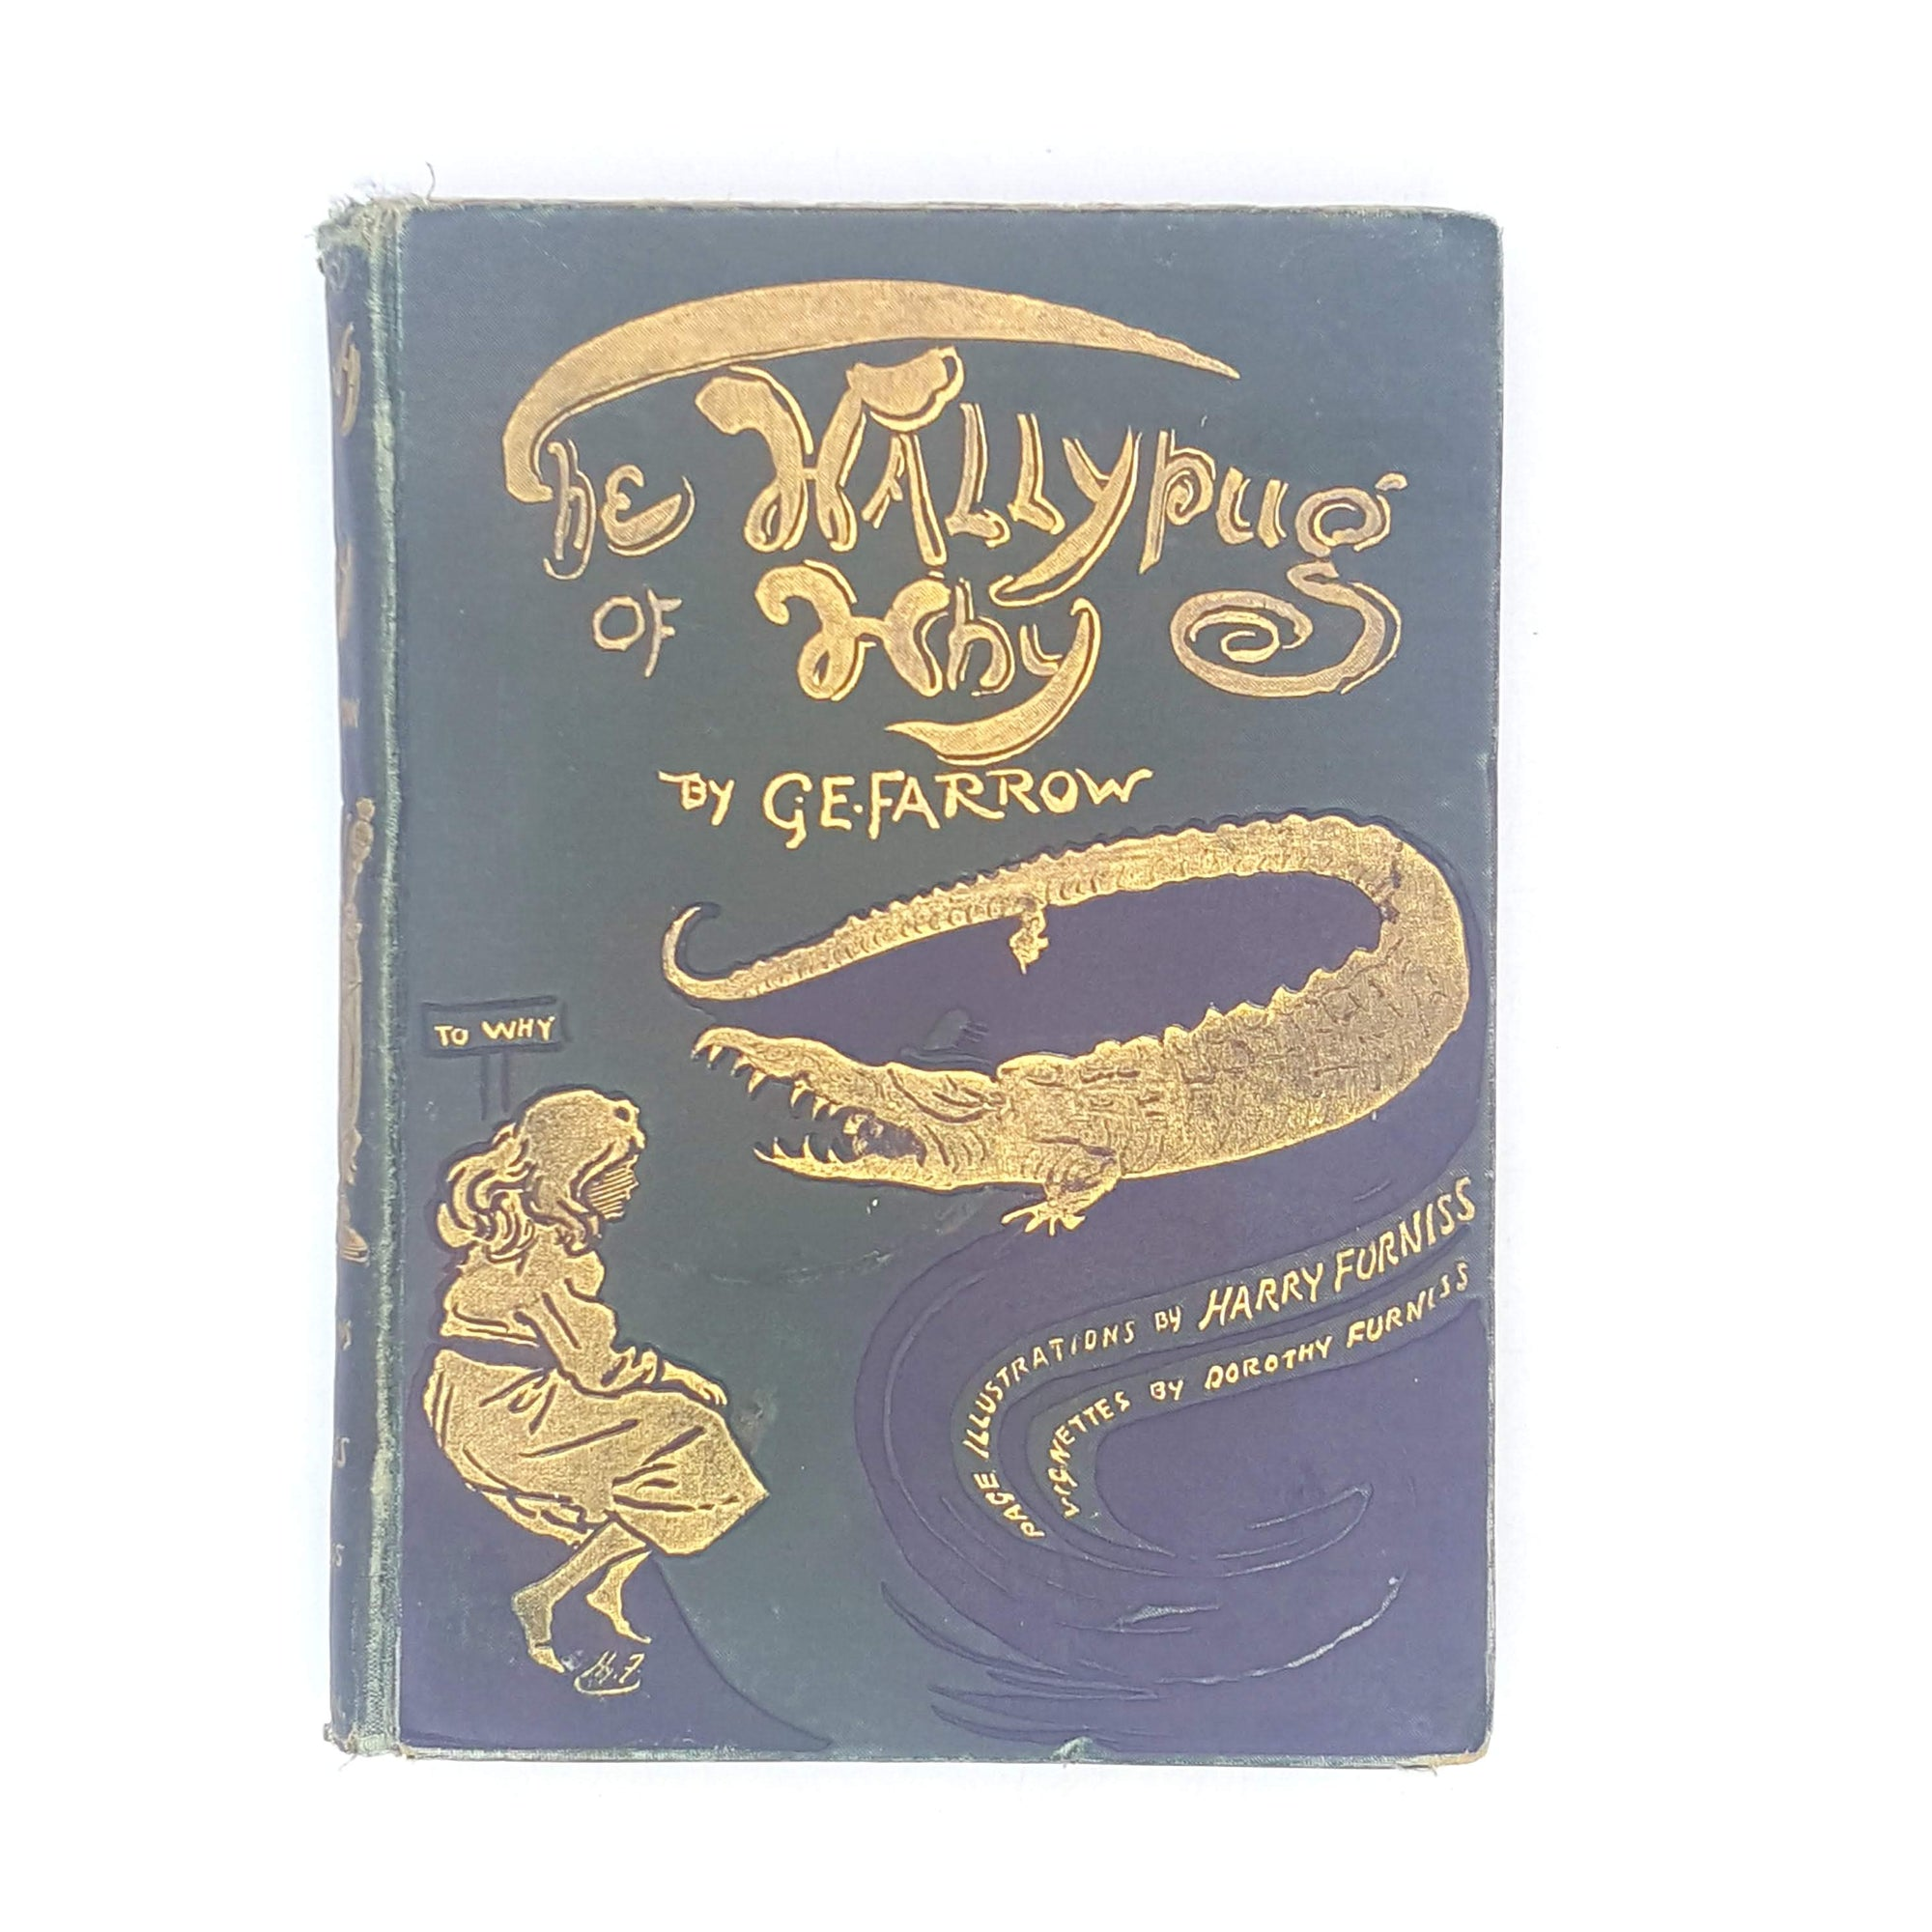 The Wallypug of Why by G. E. Farrow 1896